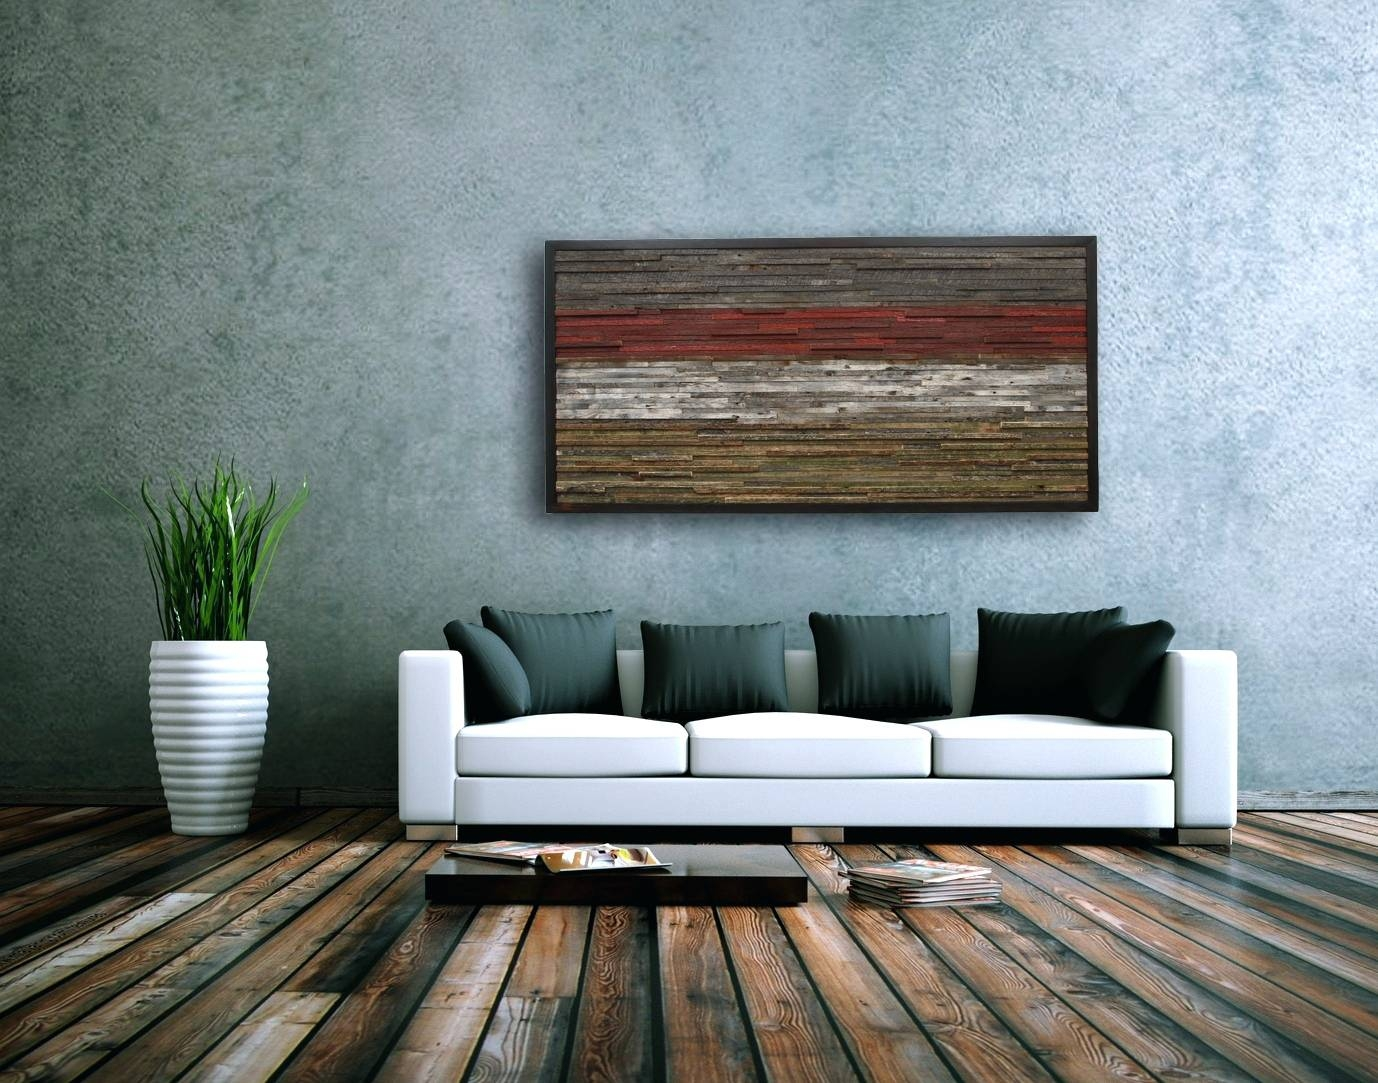 Wall Arts ~ Rustic Wood And Iron Wall Art Distressed Wood And With Latest Distressed Metal Wall Art (View 14 of 20)